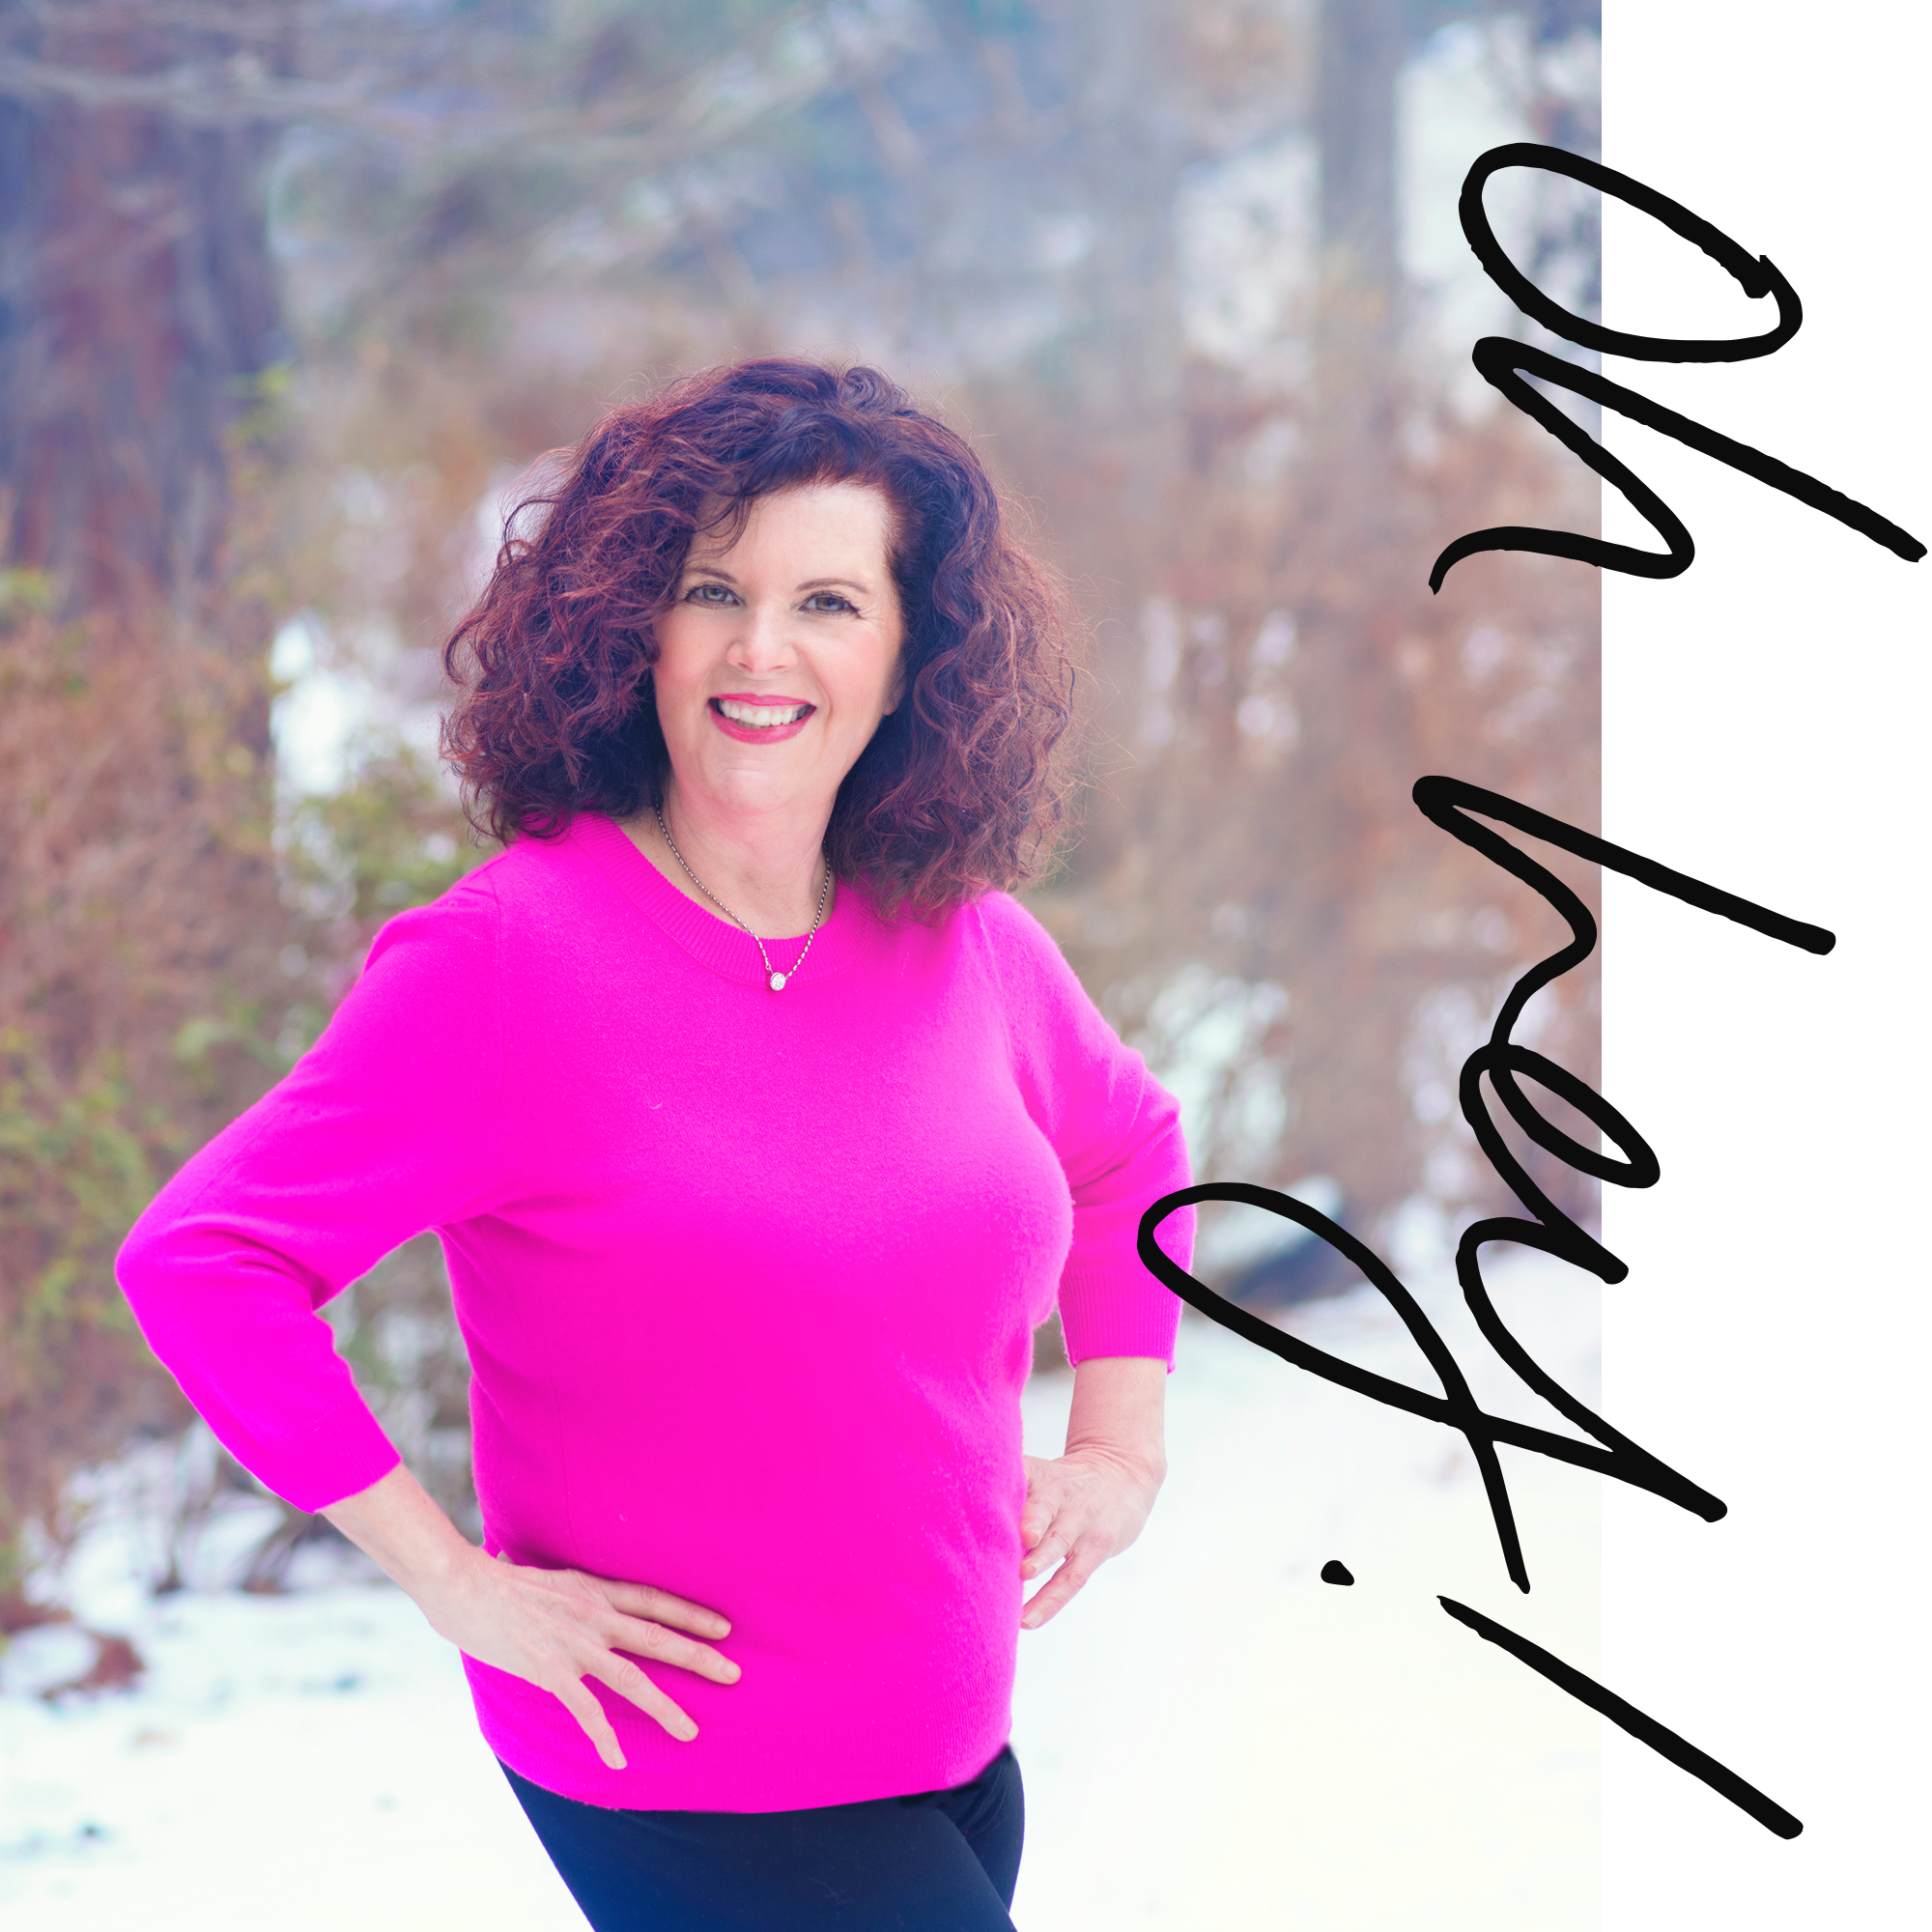 I'm Sherry Lynn, Soultographer – a Creative Visionary, Intuitive and Photographer. - I see the world through the lens of beauty – love – magic! I'm an internationally published photographer and photo artist whose work has been featured in world wide publications.